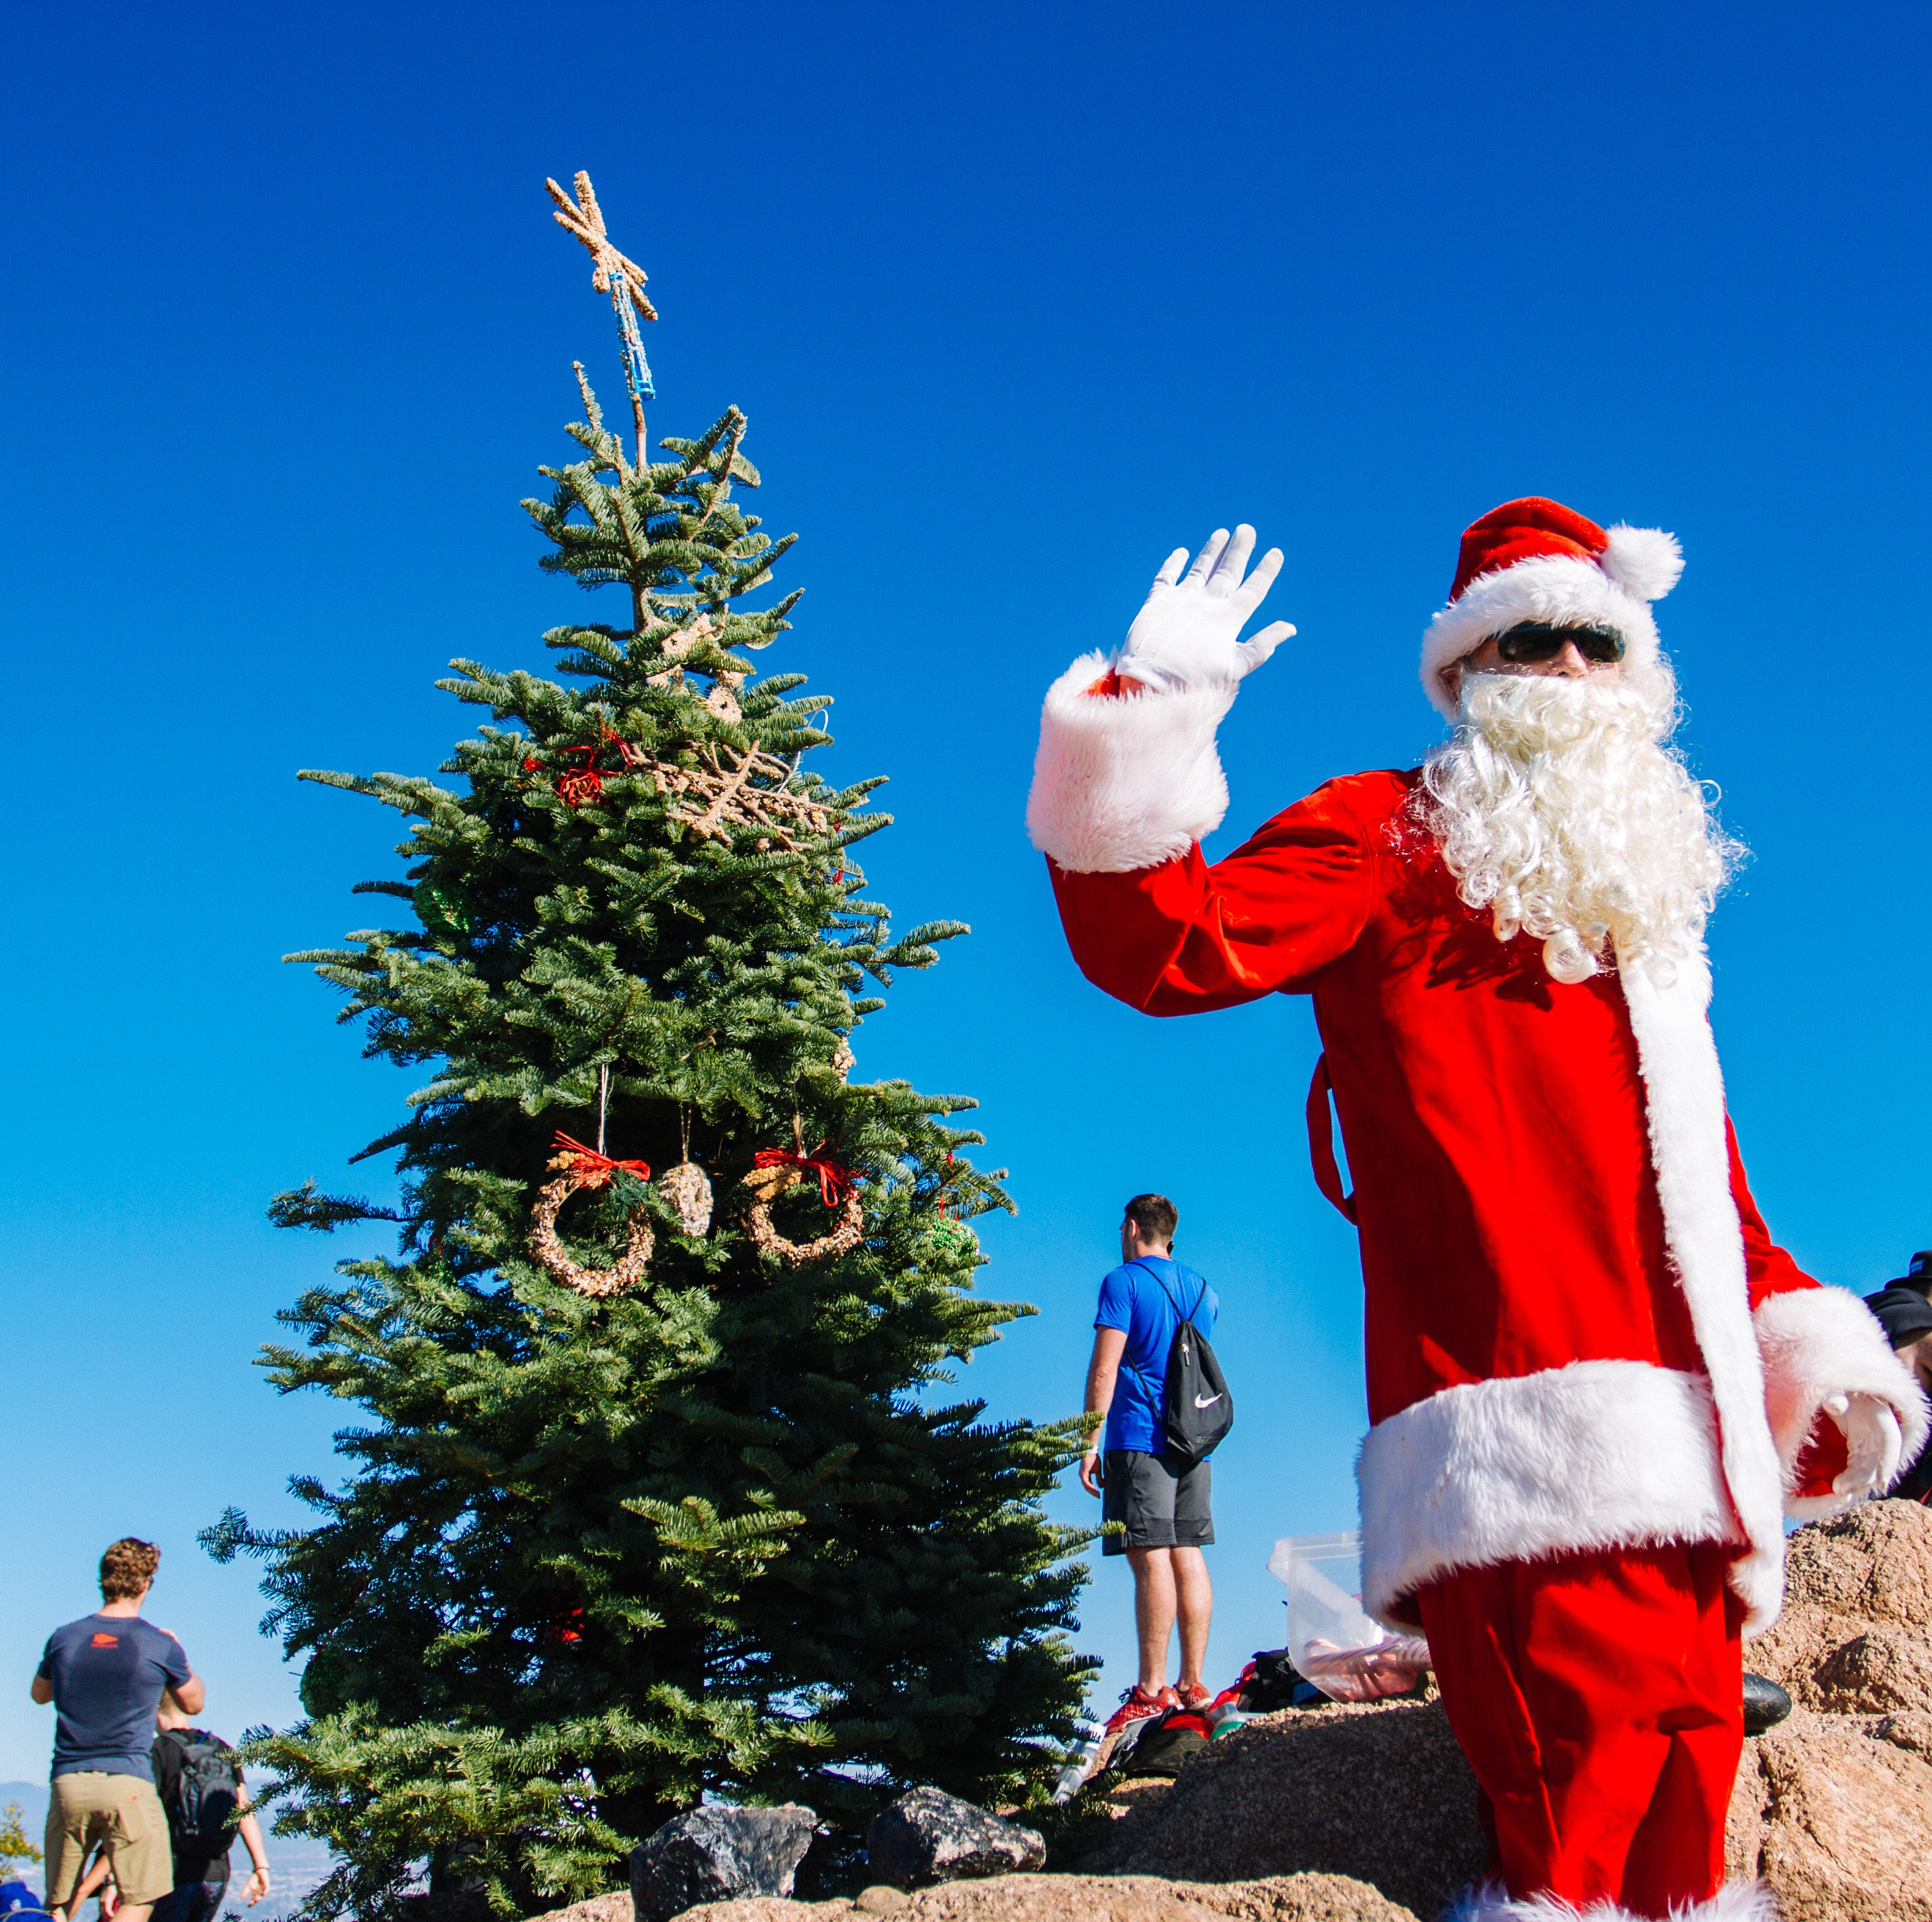 Grinched again: Camelback Mountain Christmas Tree tossed twice